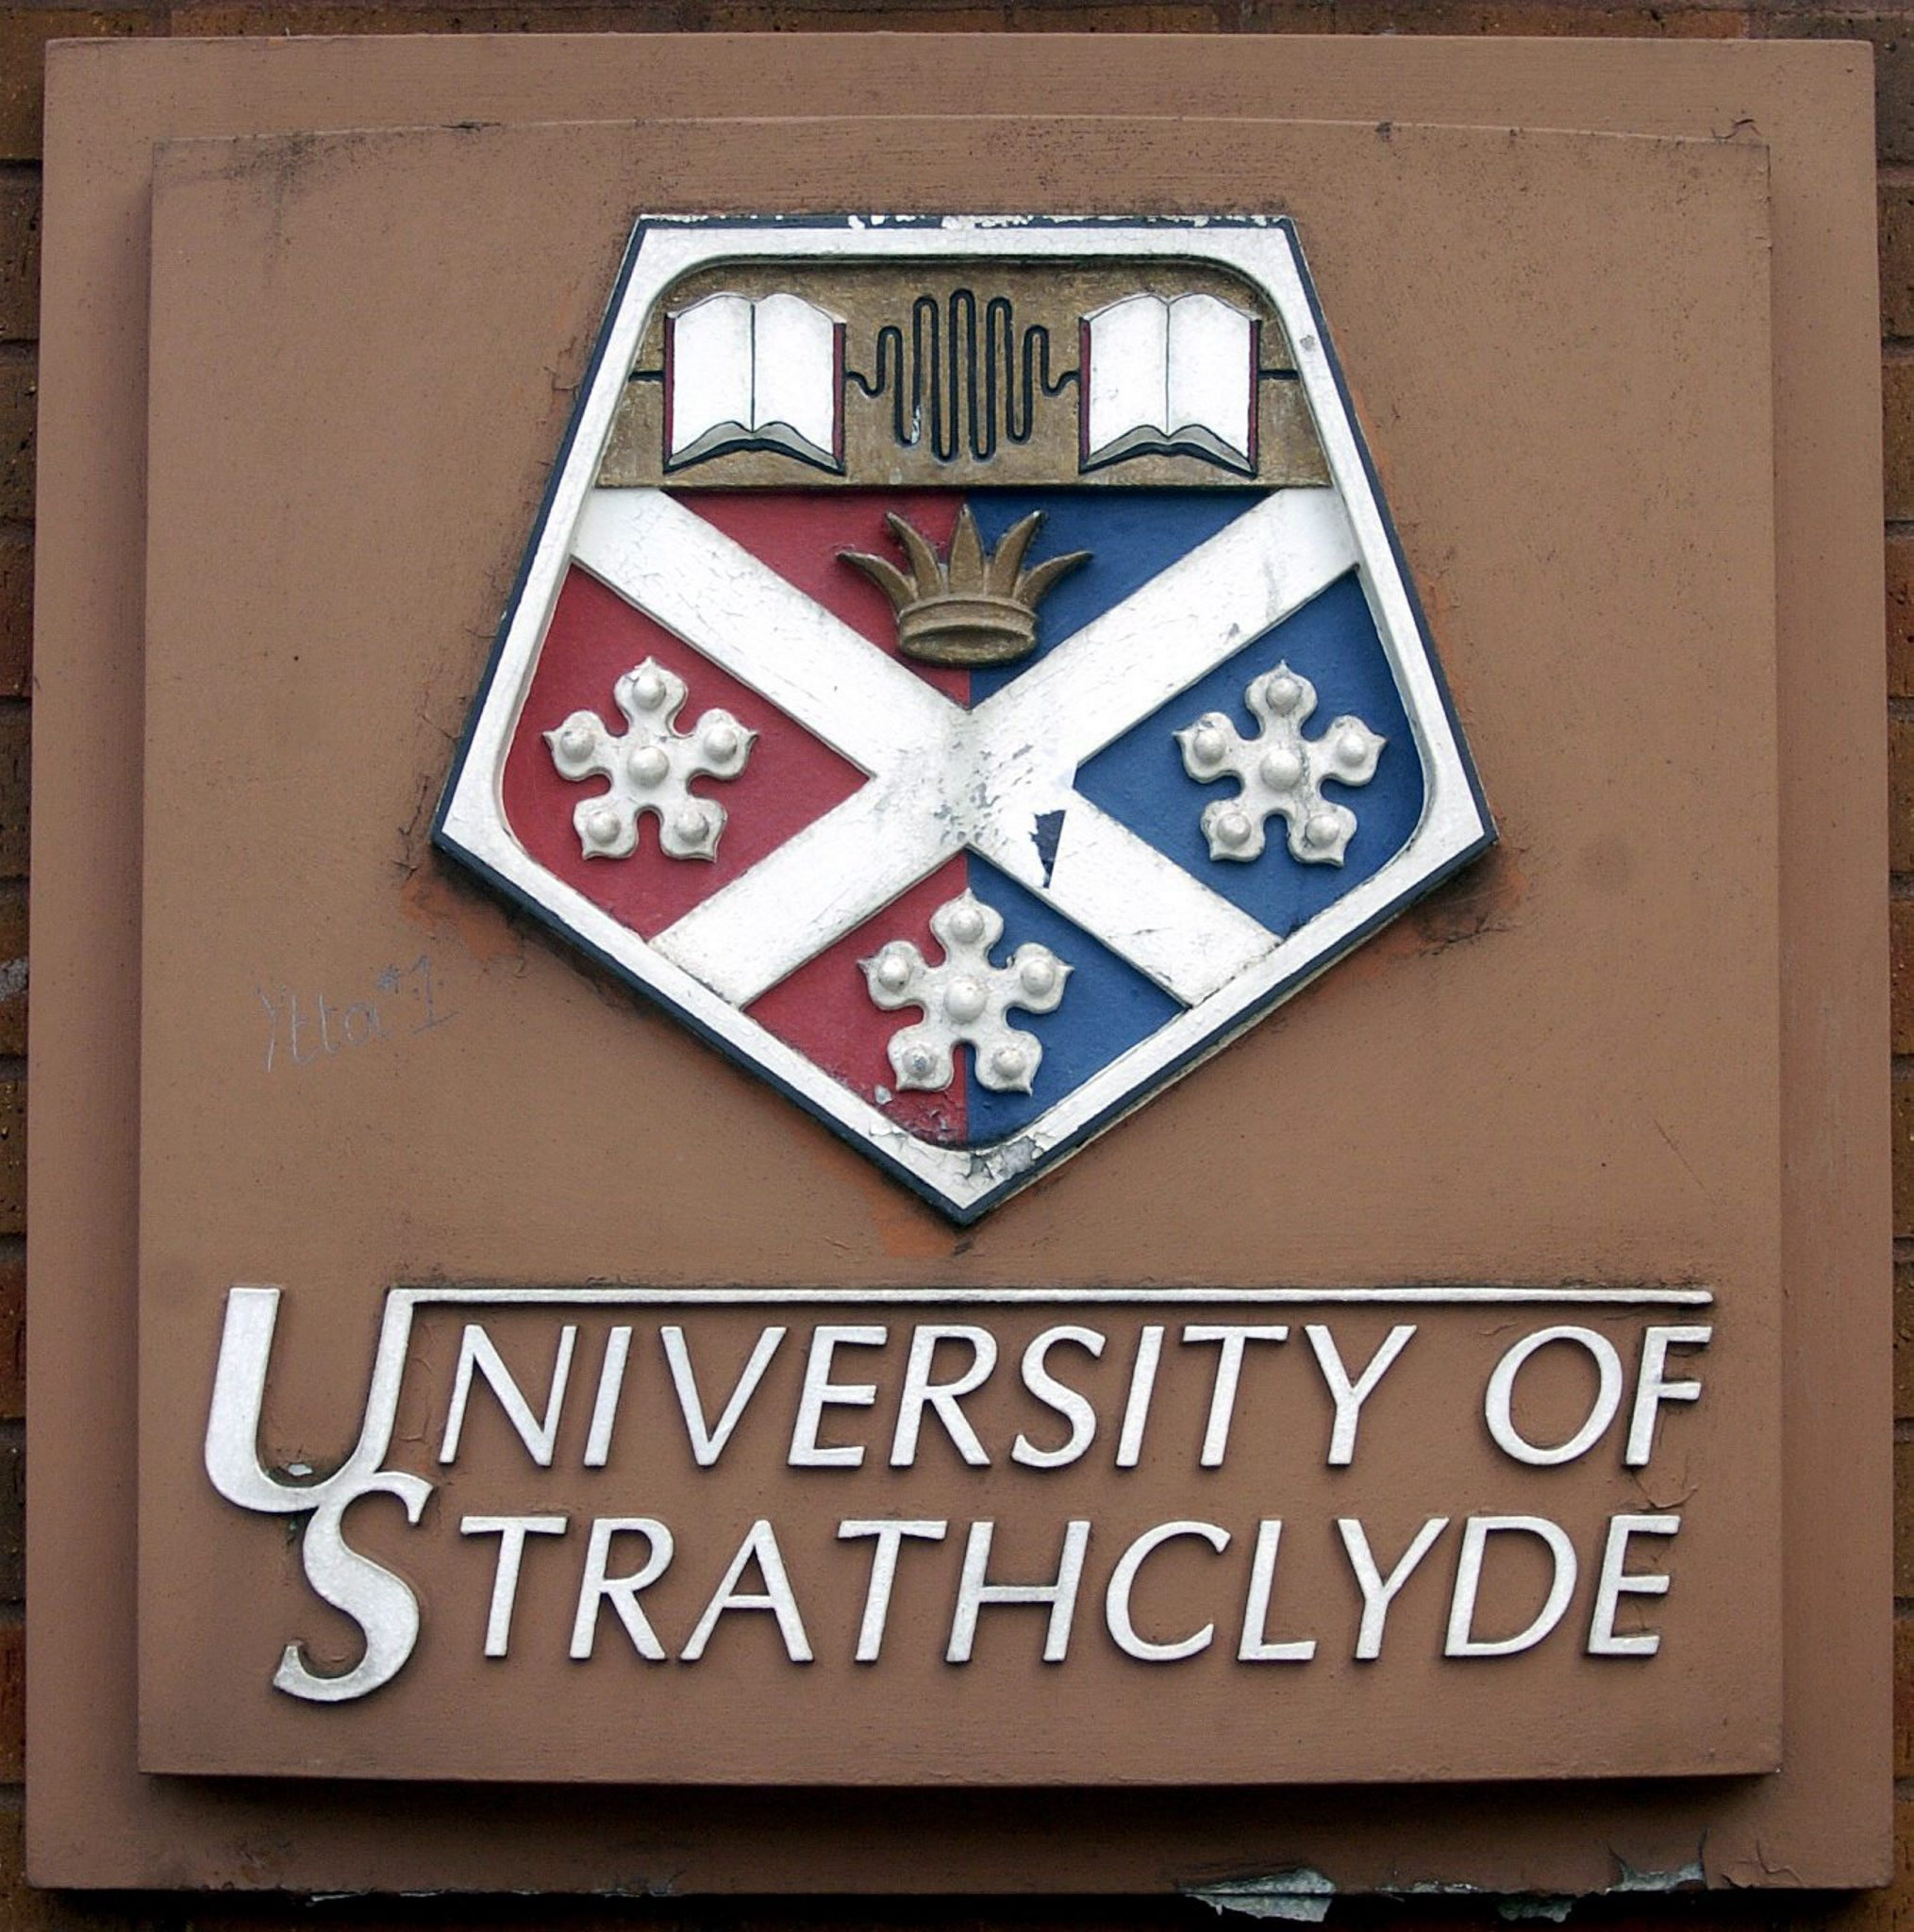 Strathclyde University.